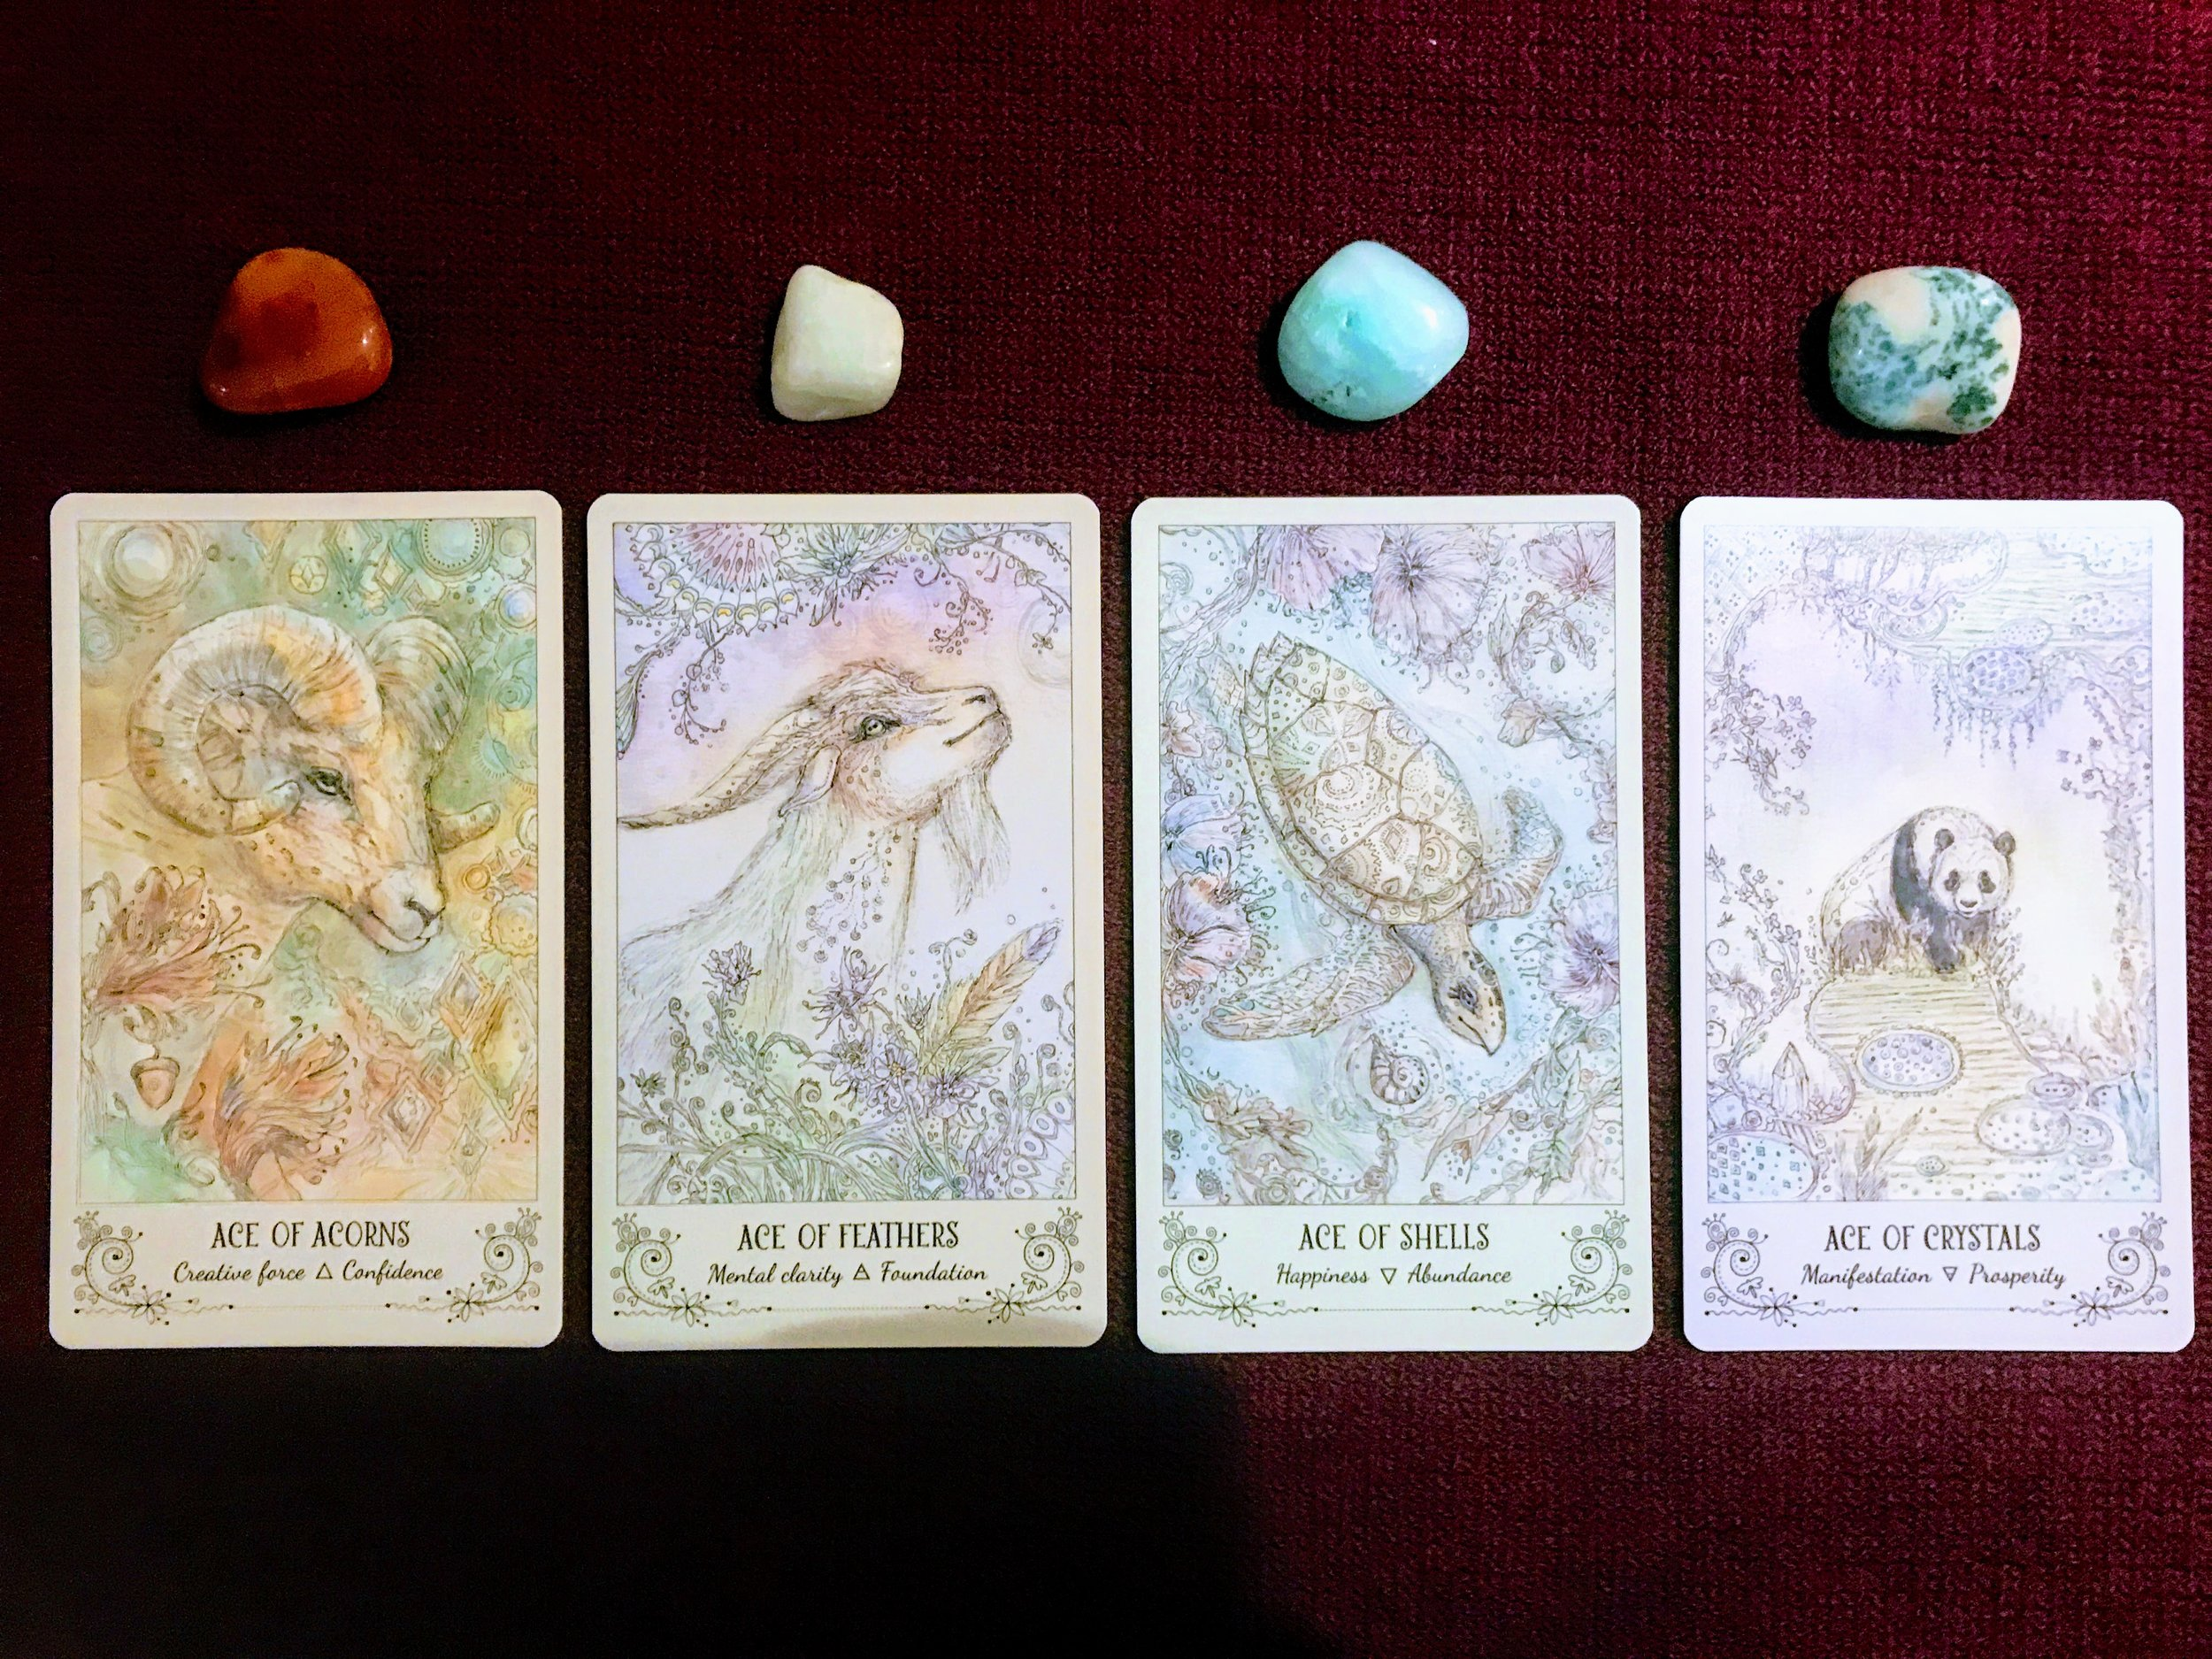 Spiritsong Tarot The Ace's - Four Suits   Maven Unmasked